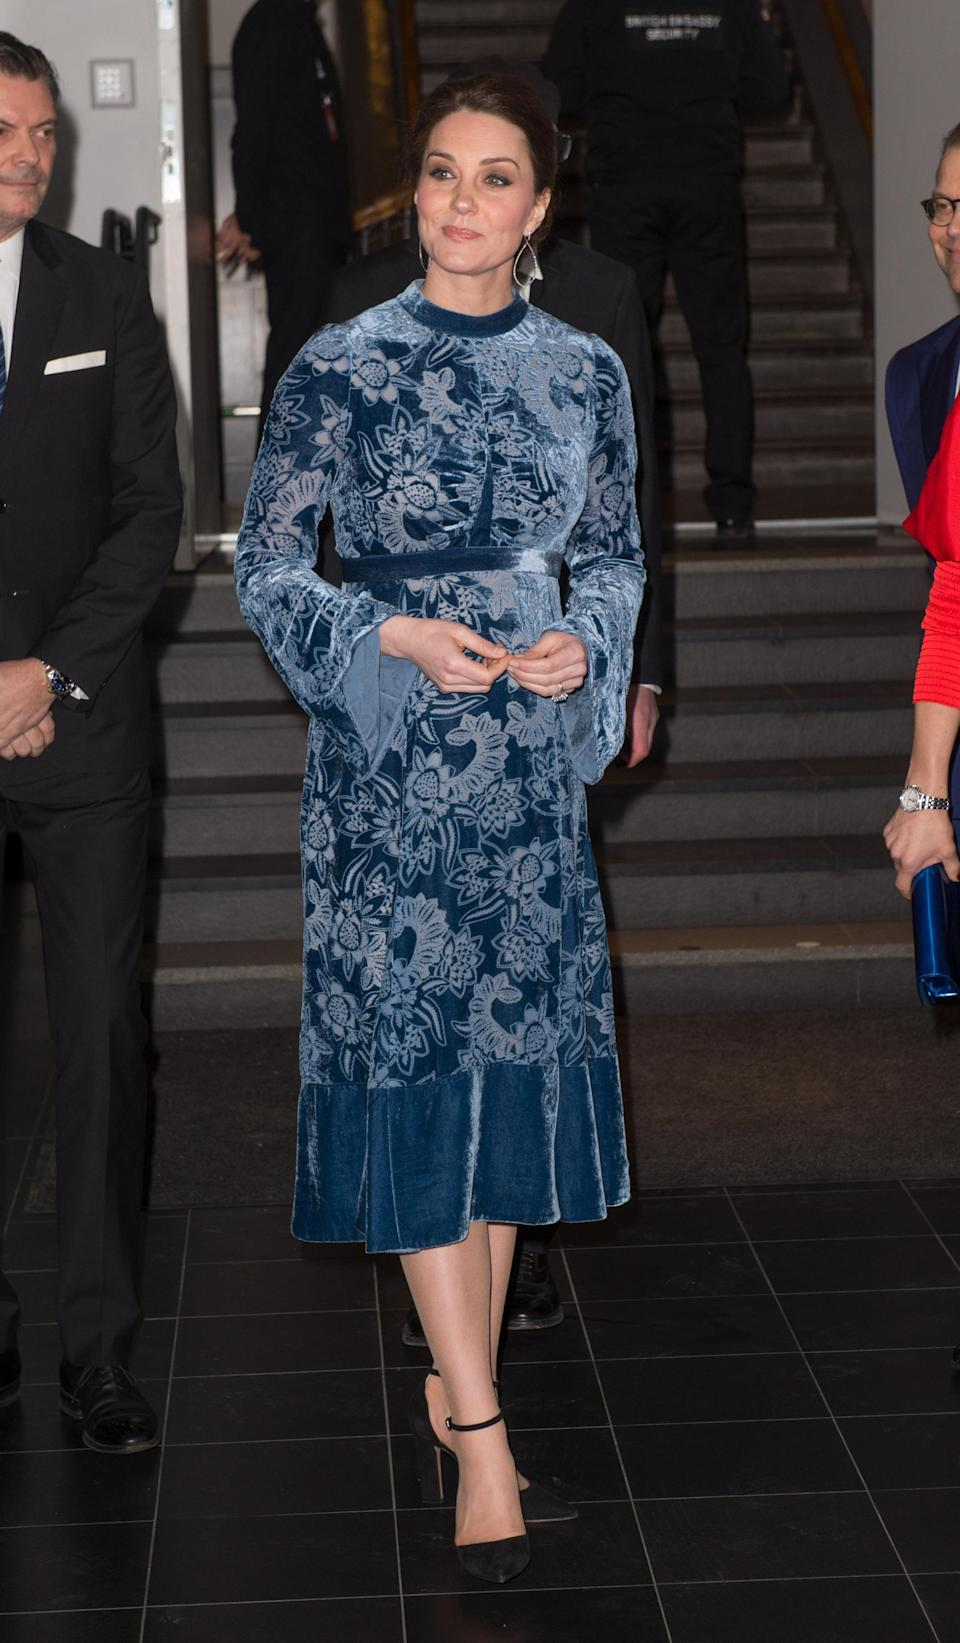 <p>For a trip to the Fotografiska Gallery in Stockholm, the Duchess of Cambridge upped her fashion game even more in a £2,690 Erdem dress. The mother-of-three accessorised the look with even pricier Robinson Pelham earrings (£4,900). To finish the aesthetic, the pregnant royal chose a pair of Gianvito Rossi heels (£329). <em>[Photo: Getty]</em> </p>